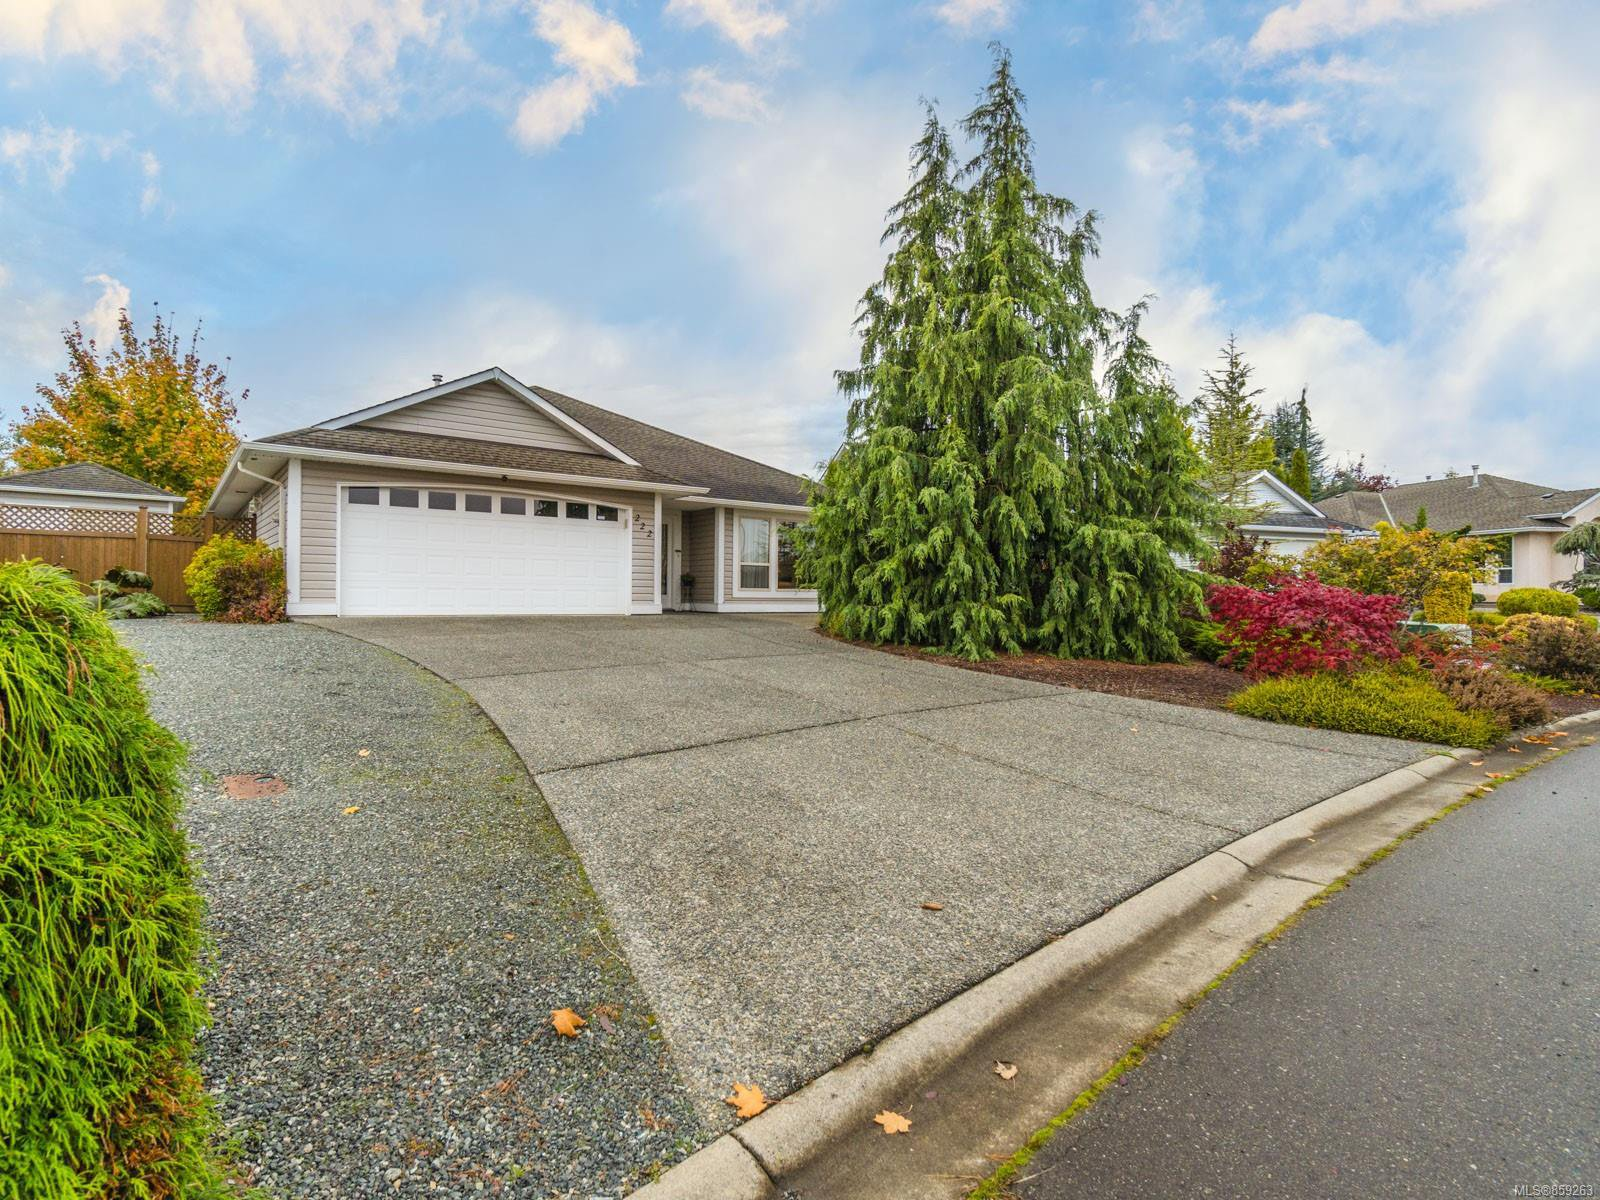 Main Photo: 222 Strawberry Cres in : PQ Parksville House for sale (Parksville/Qualicum)  : MLS®# 859263